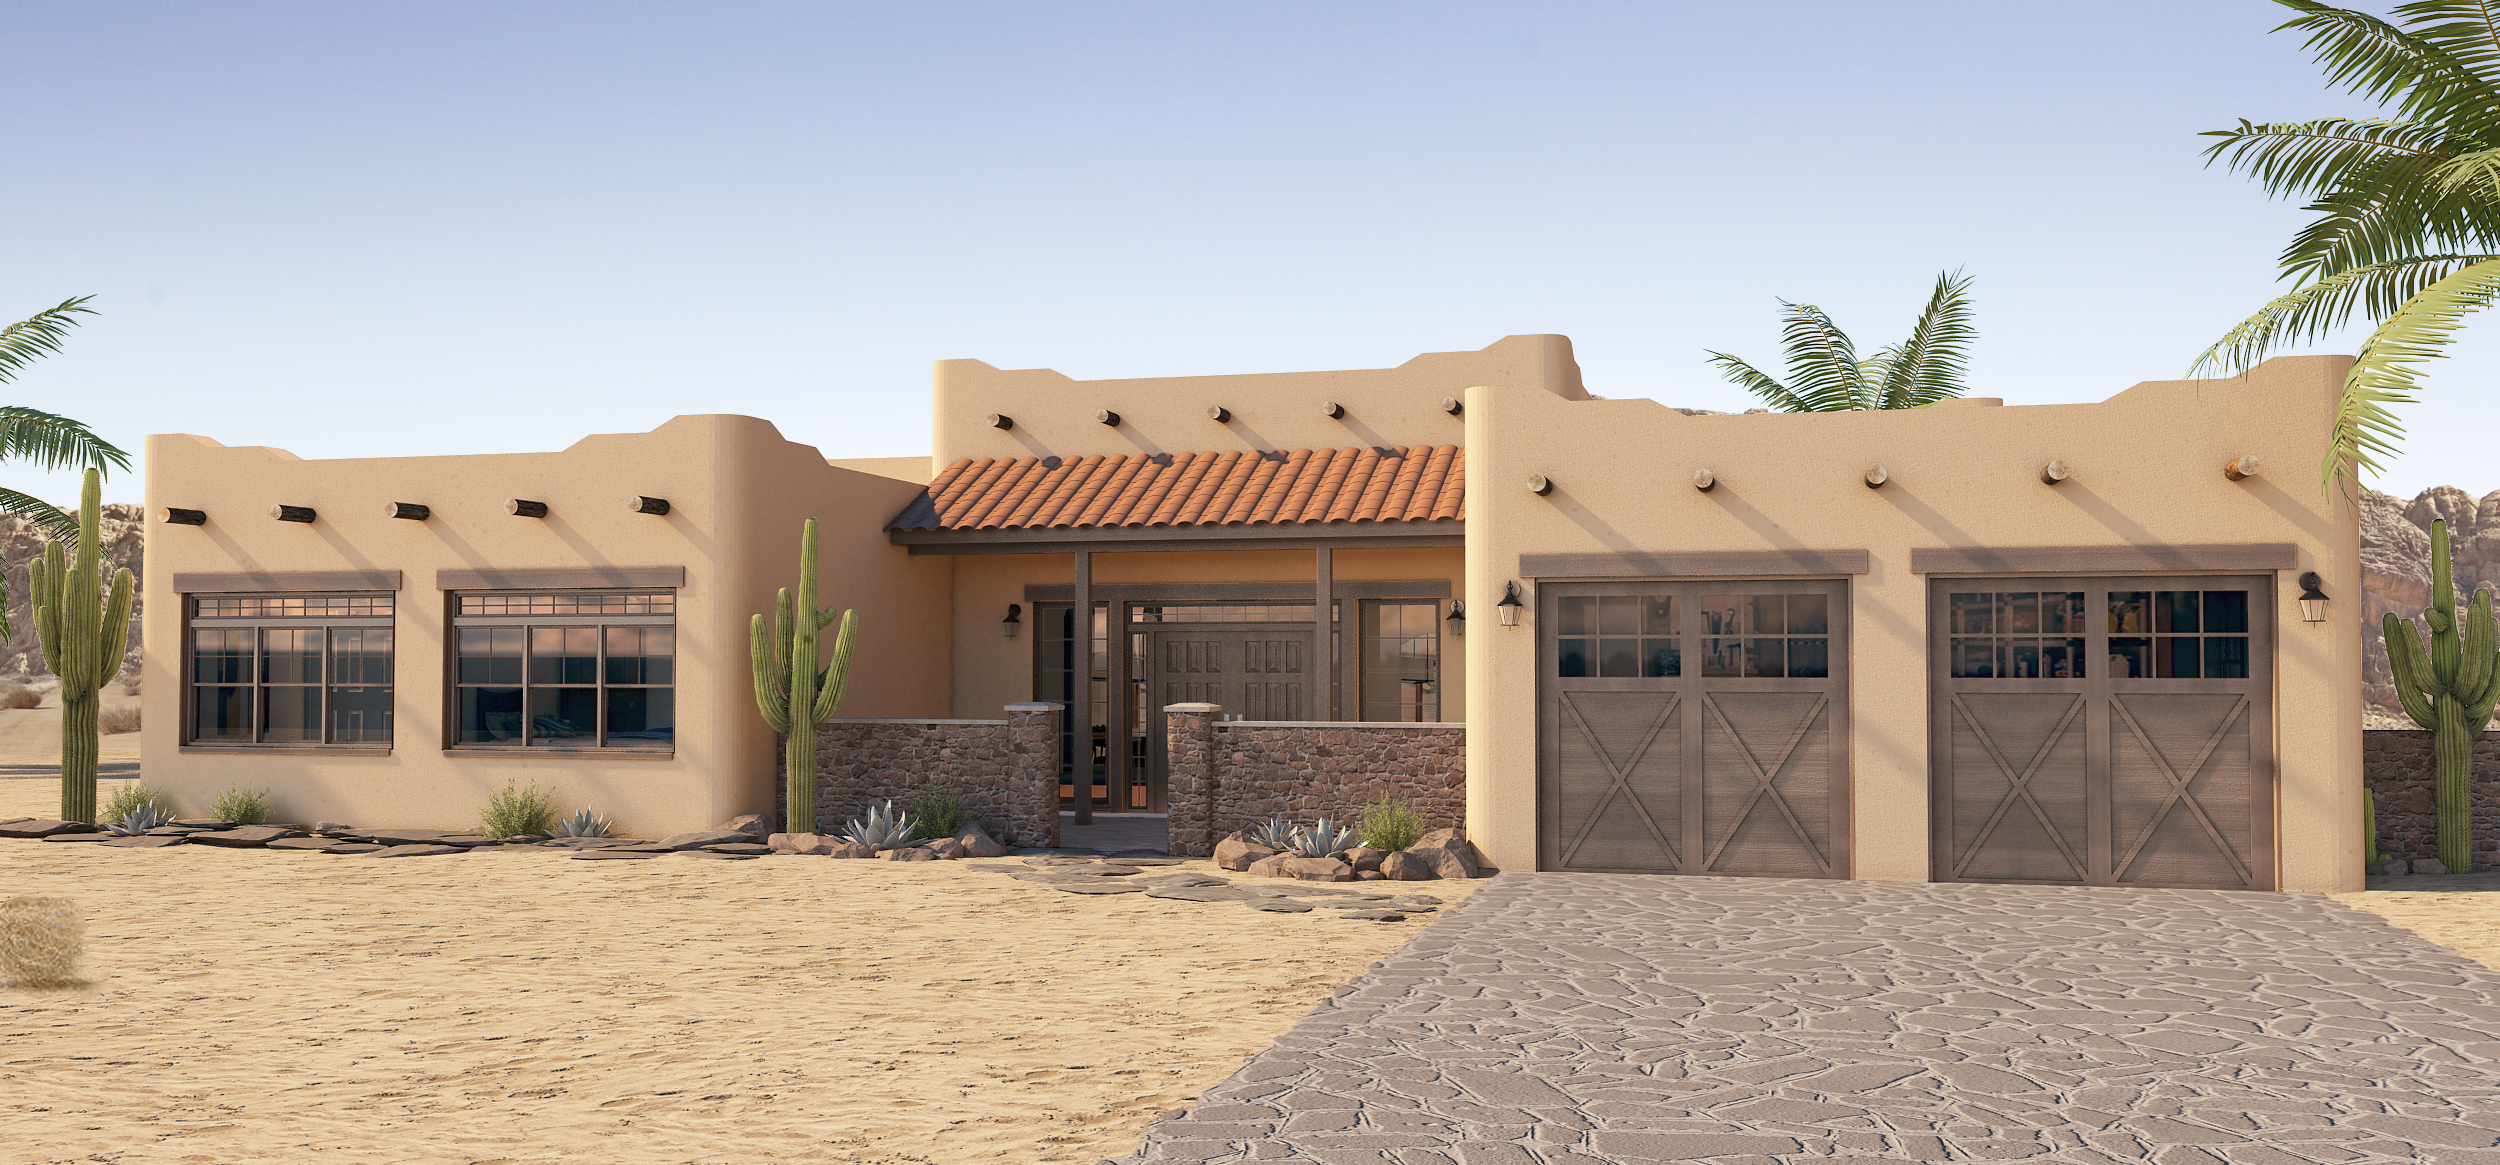 Adobe clipart homes. Unusual inspiration ideas style